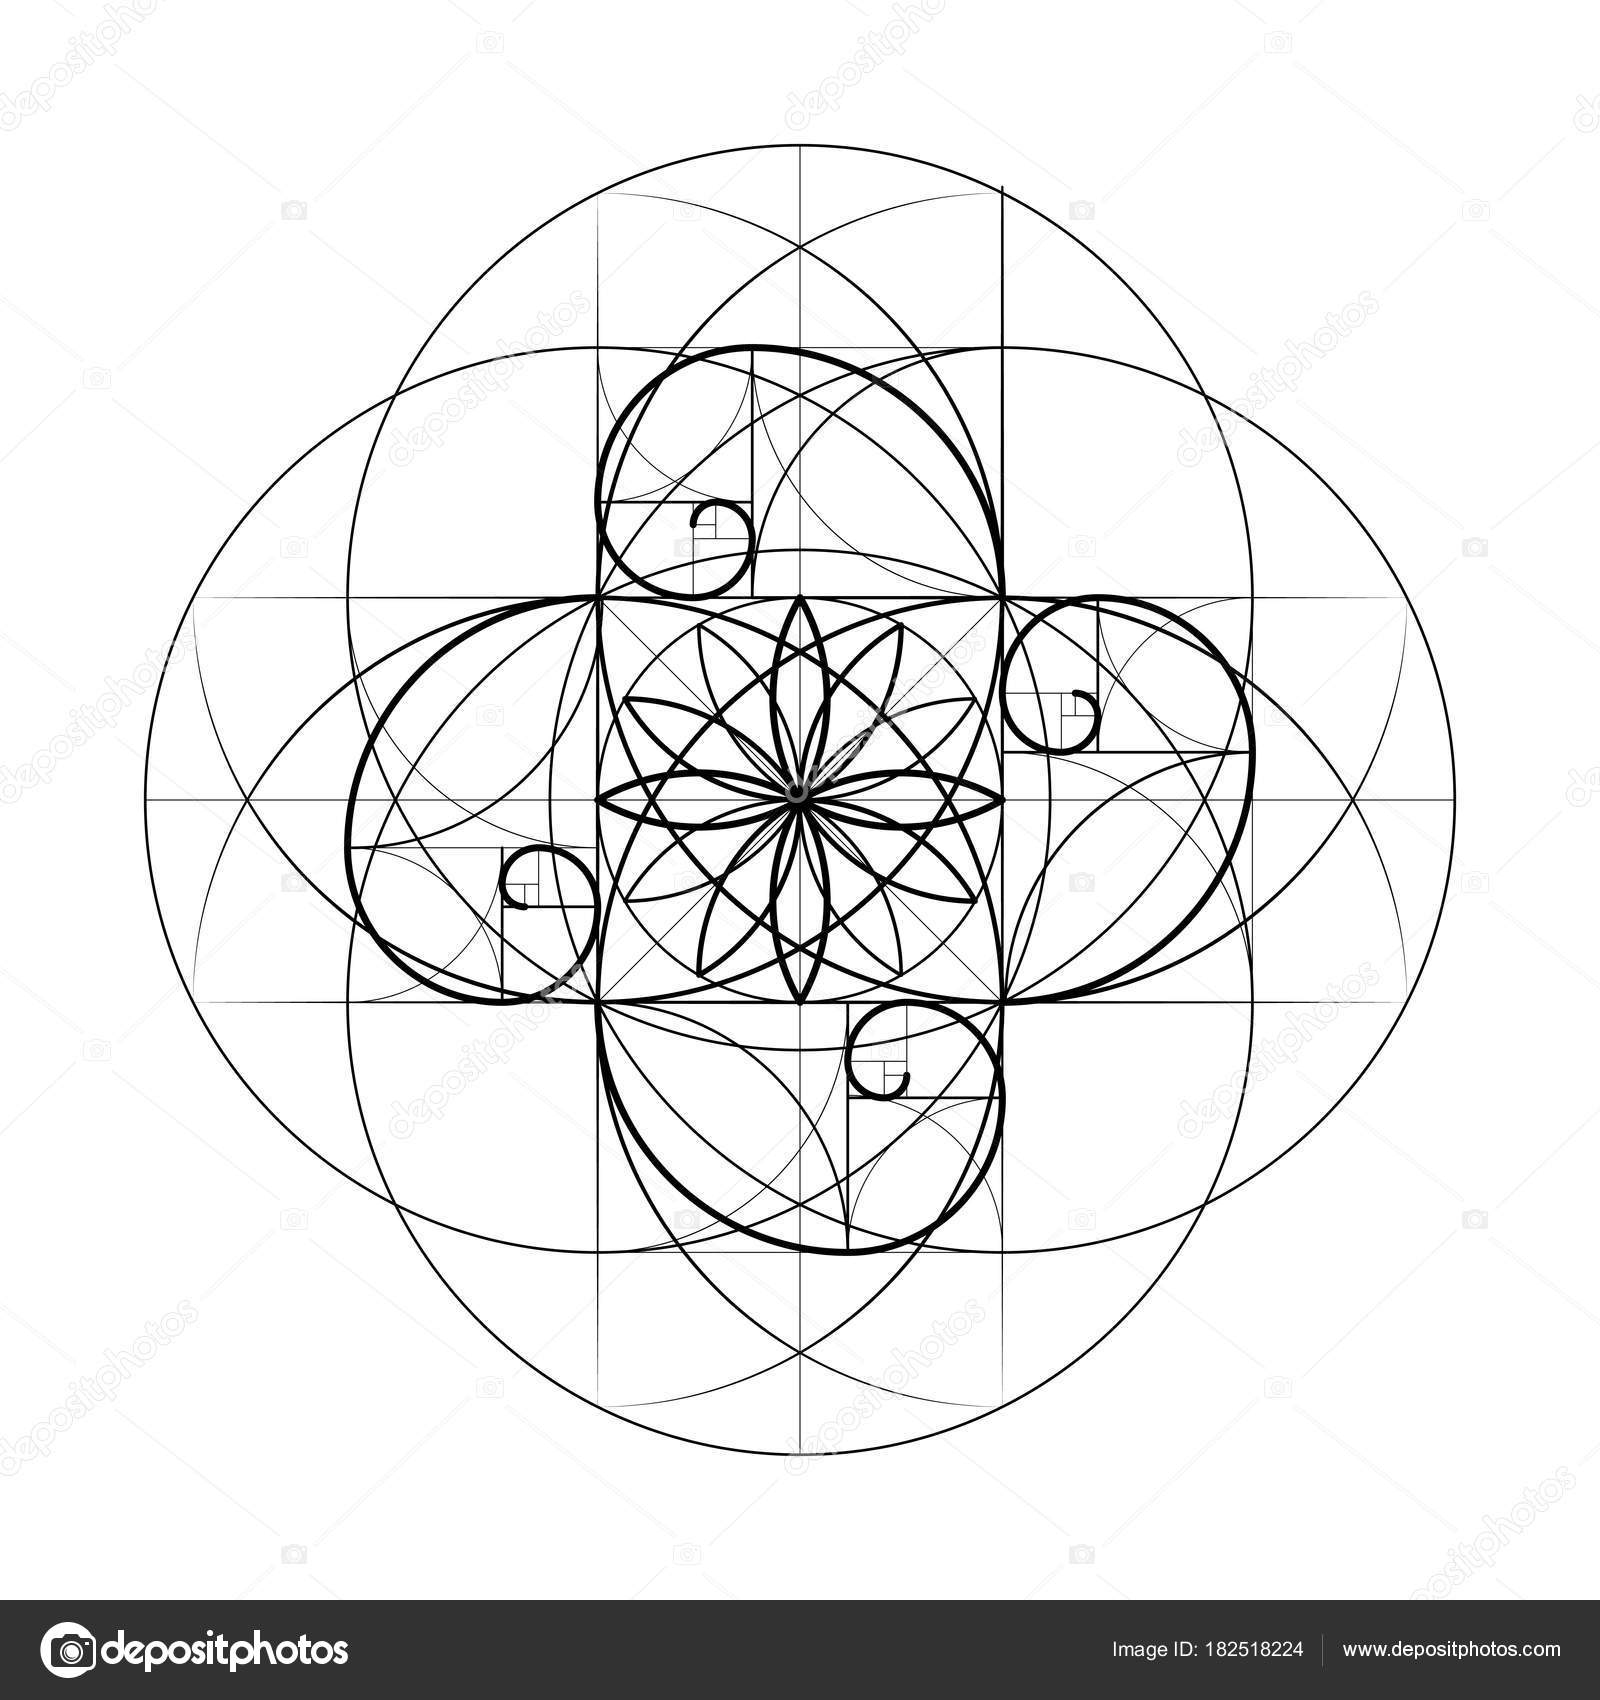 Golden Section  Sacred Geometry  Vector symbol at the intersection